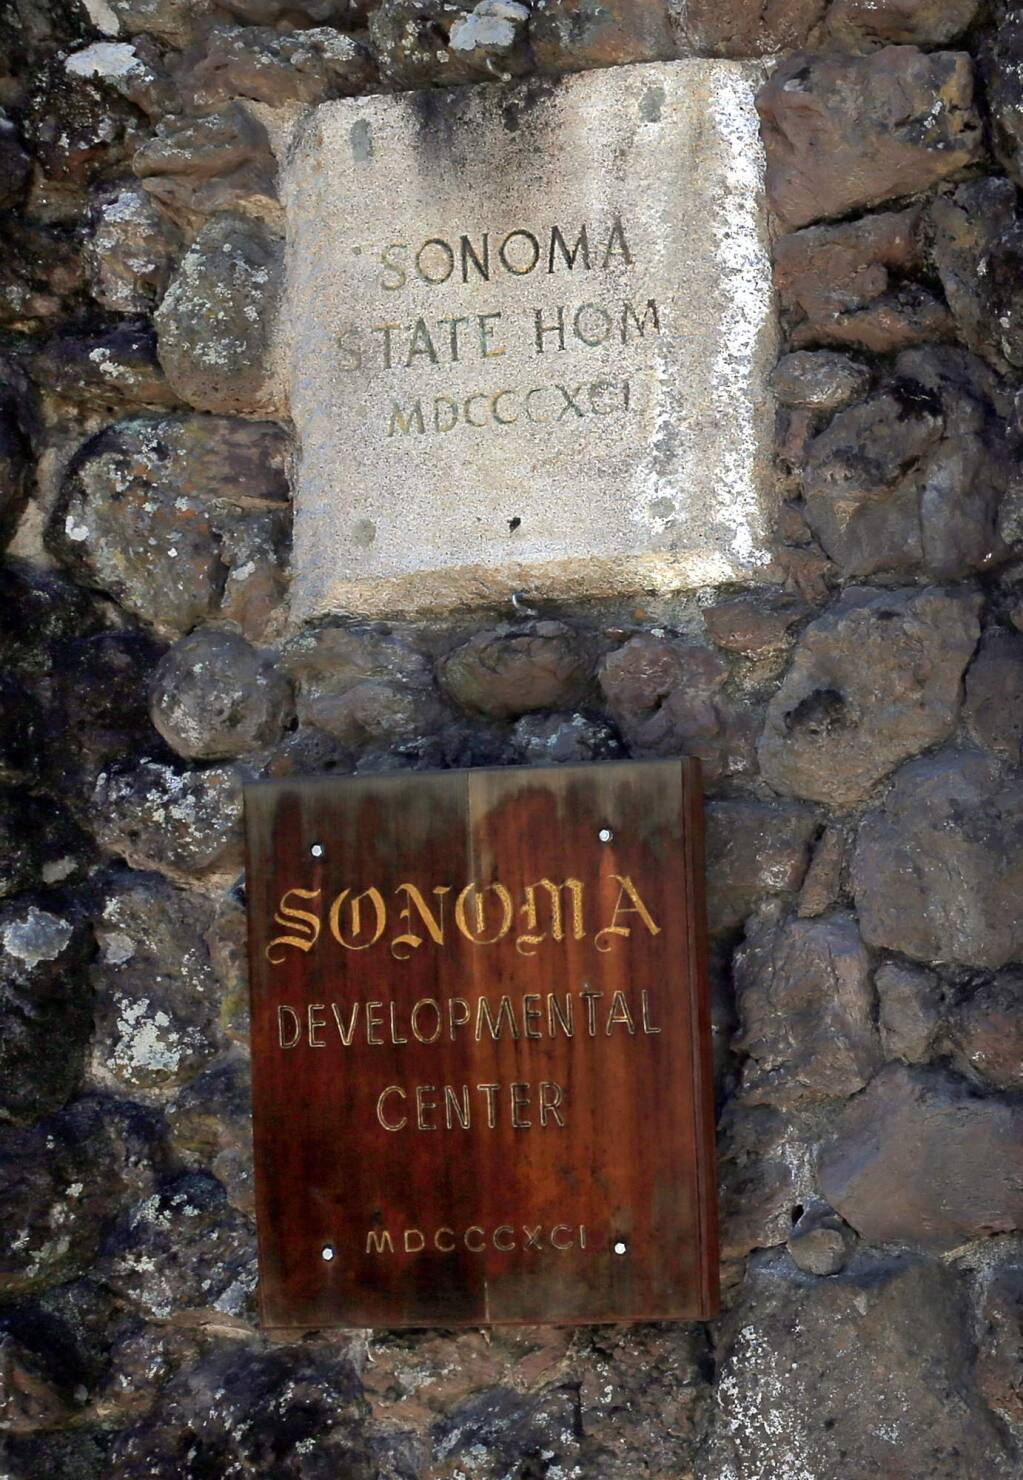 Name plates at the entrance of the the Somoma Developmental Center, Tuesday May 23, 2017. Located in Glen Ellen, the facility is scheduled to close by the end of 2018. $2.1 million will be used in a study to assess the condition of the facility. Many of the buildings are deteriorating with age and may need to be demolished, excluding the historic structures. (Kent Porter / Press Democrat) 2017